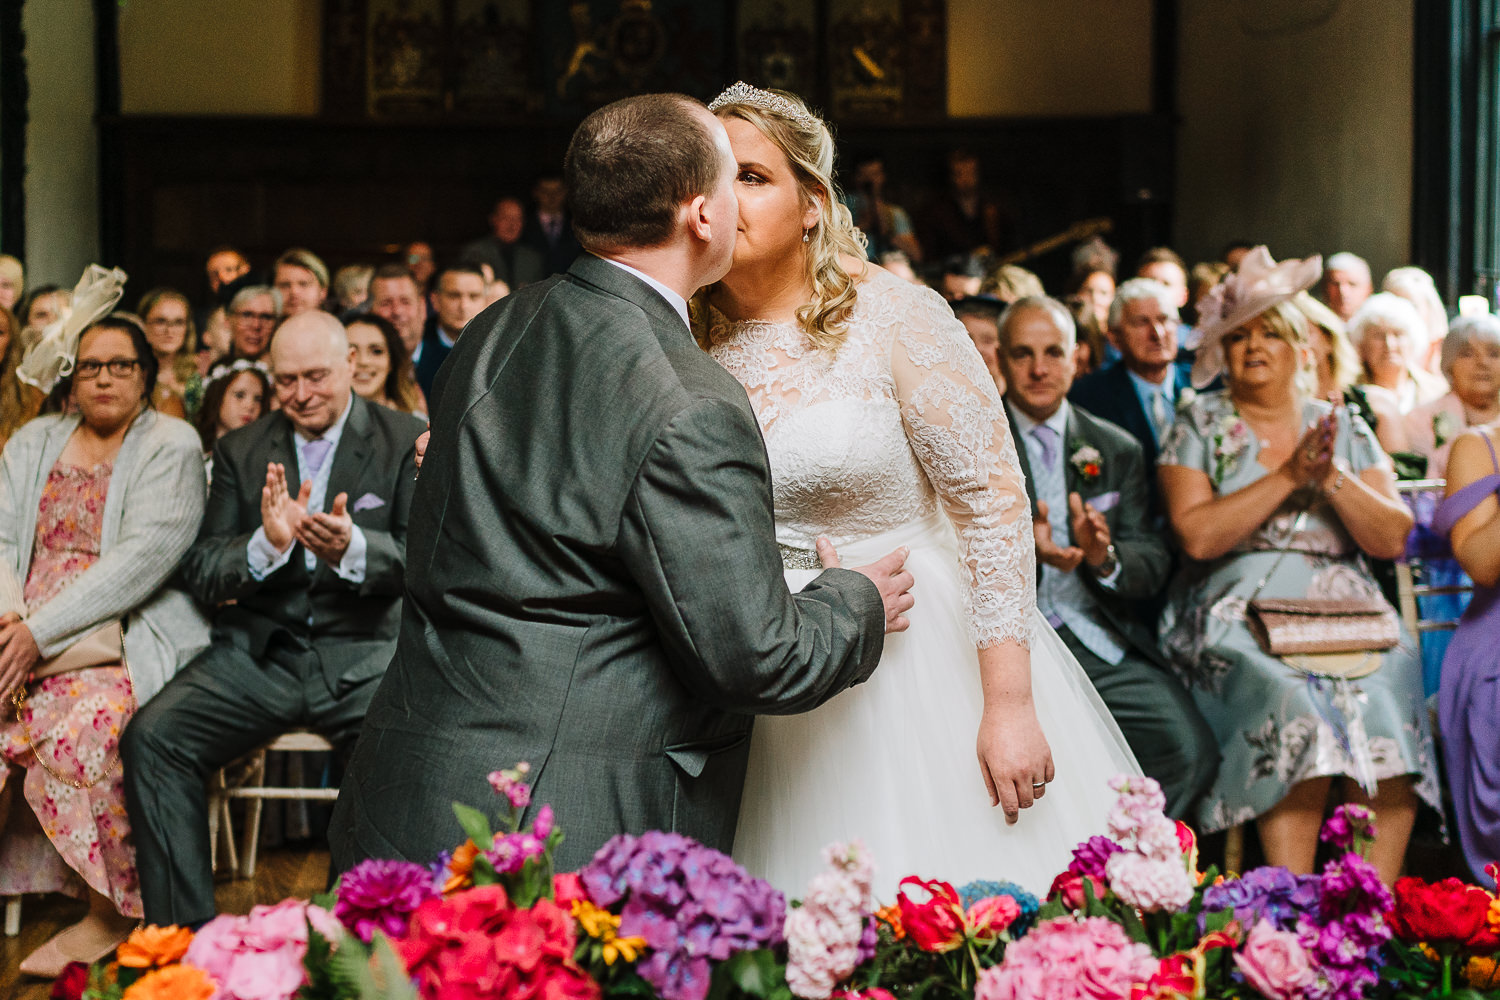 visually impaired couple tie the knot